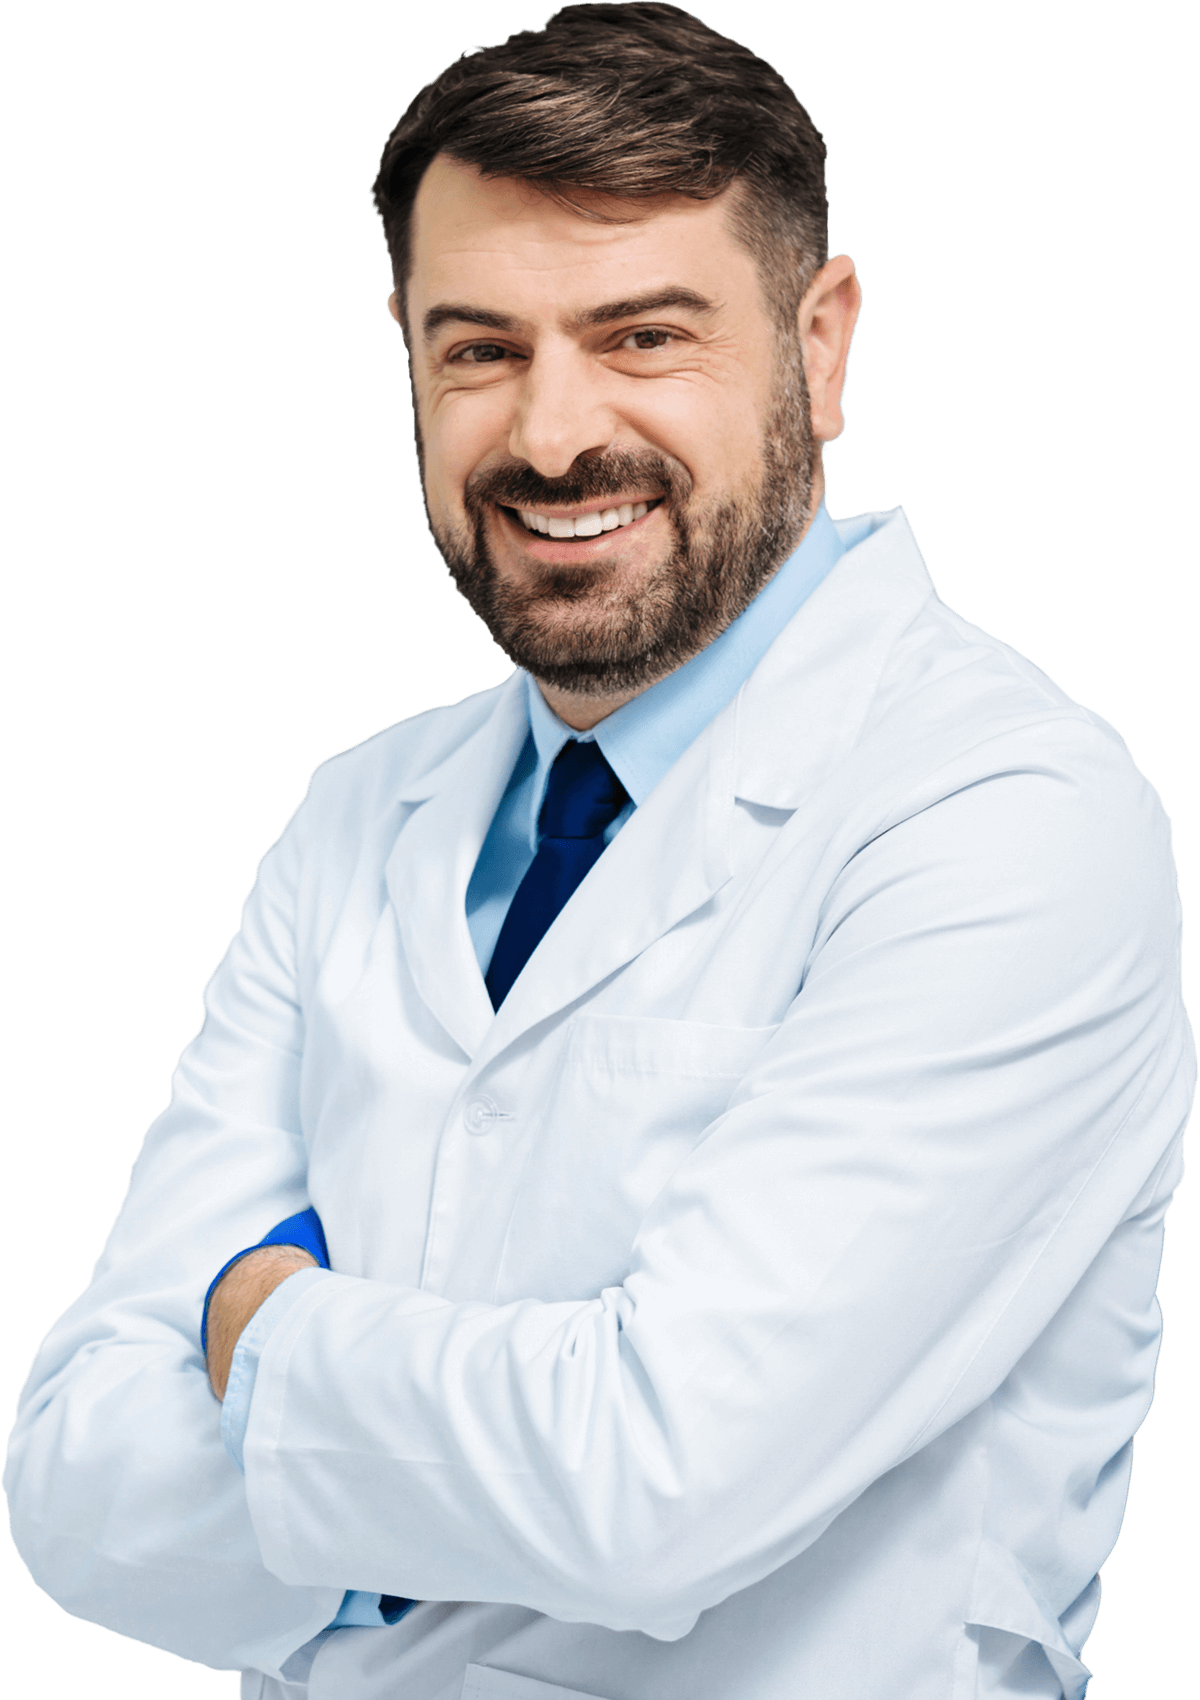 https://clinicadrstanescu.ro/wp-content/uploads/2020/02/doctor-2.png